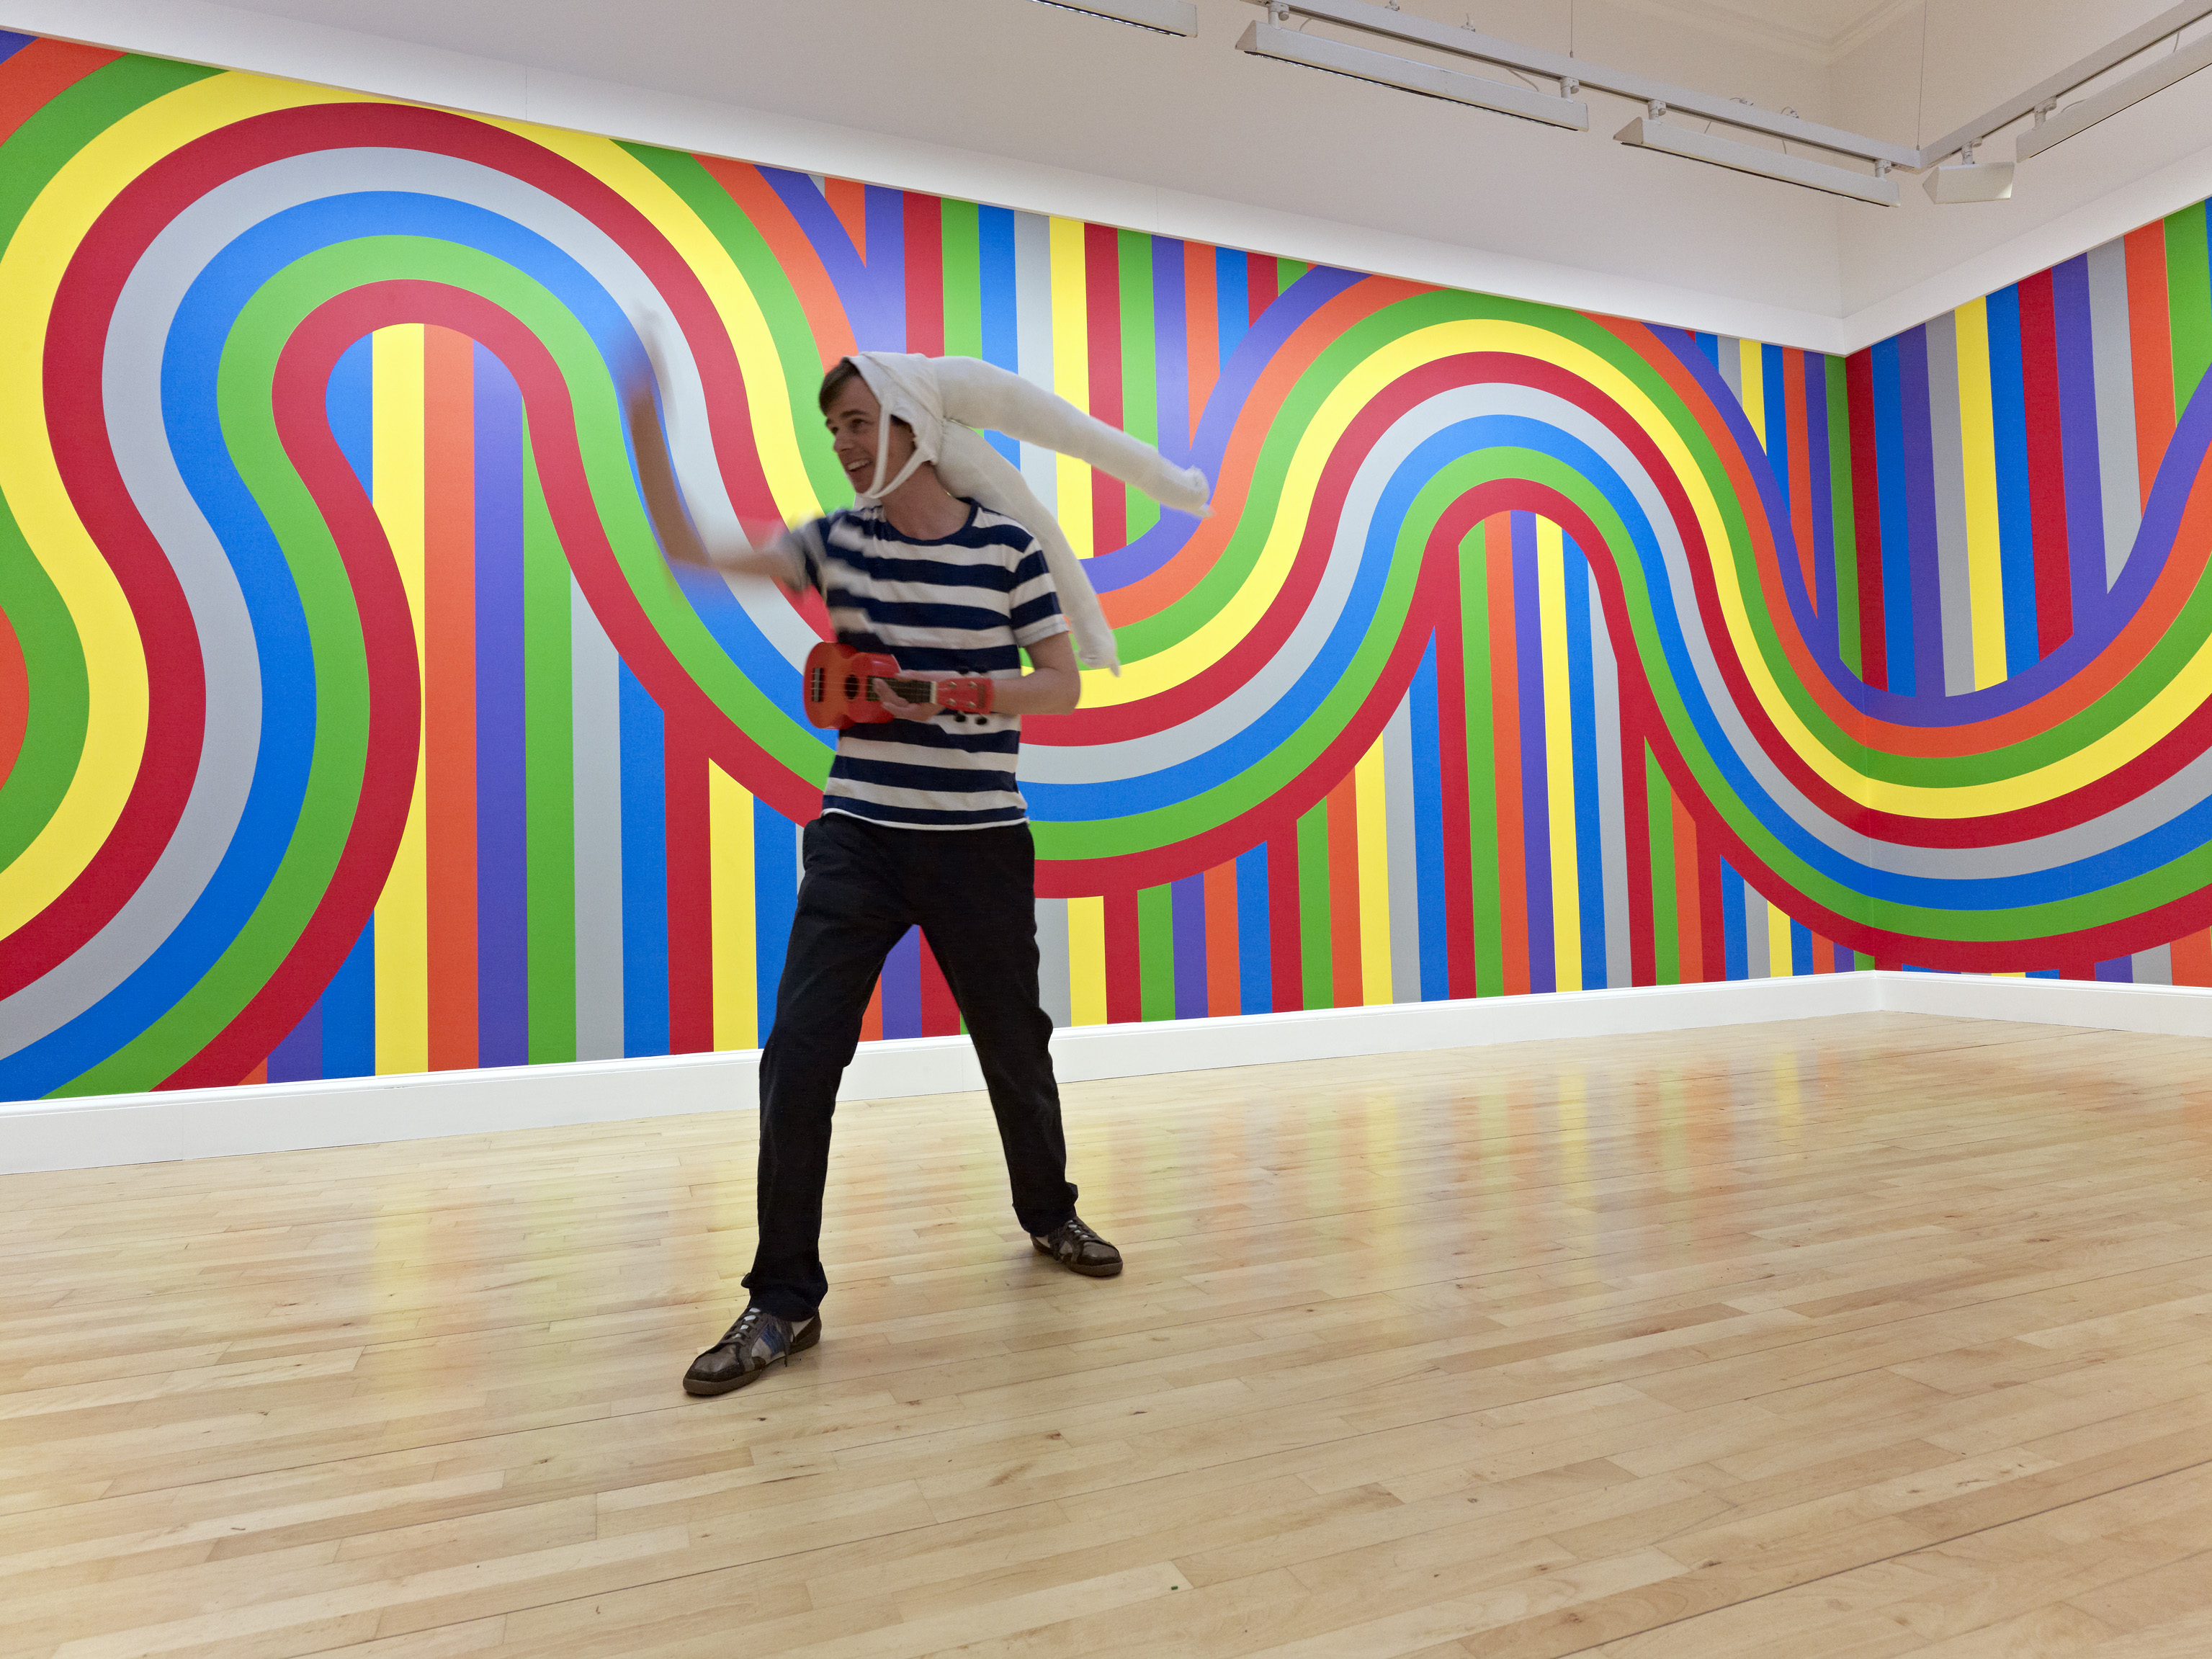 David Sherry, Go Dance, Scottish National Gallery of Modern Art, Edinburgh